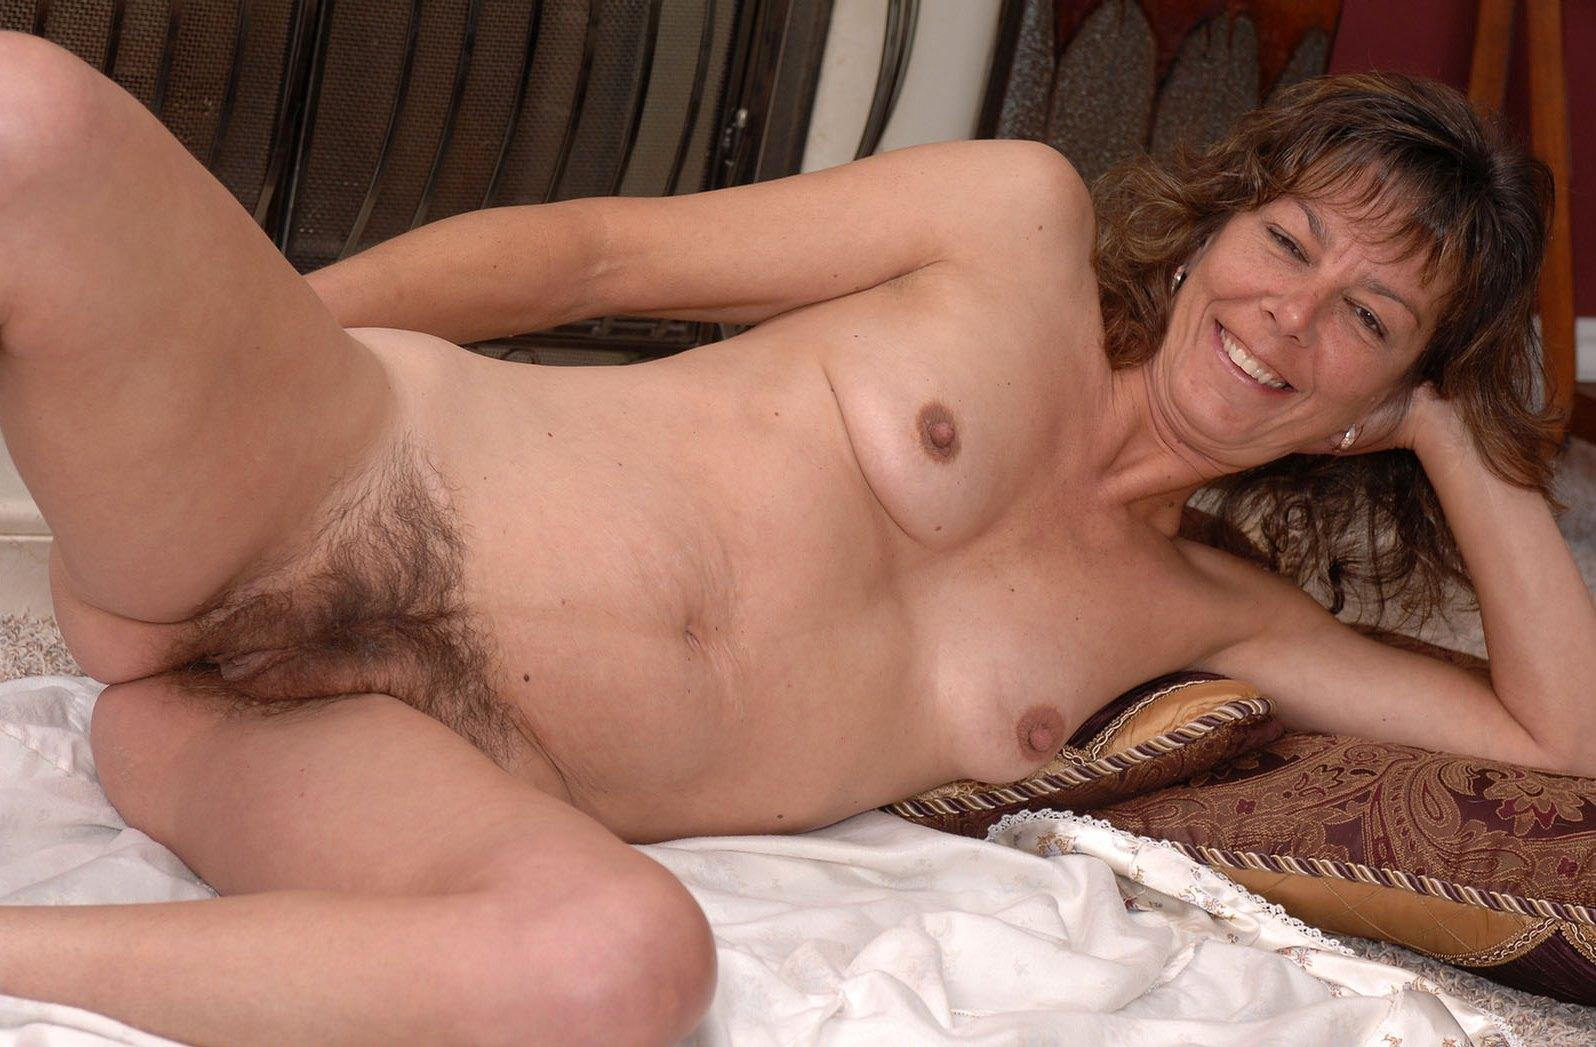 Son cum inside wife missionary position